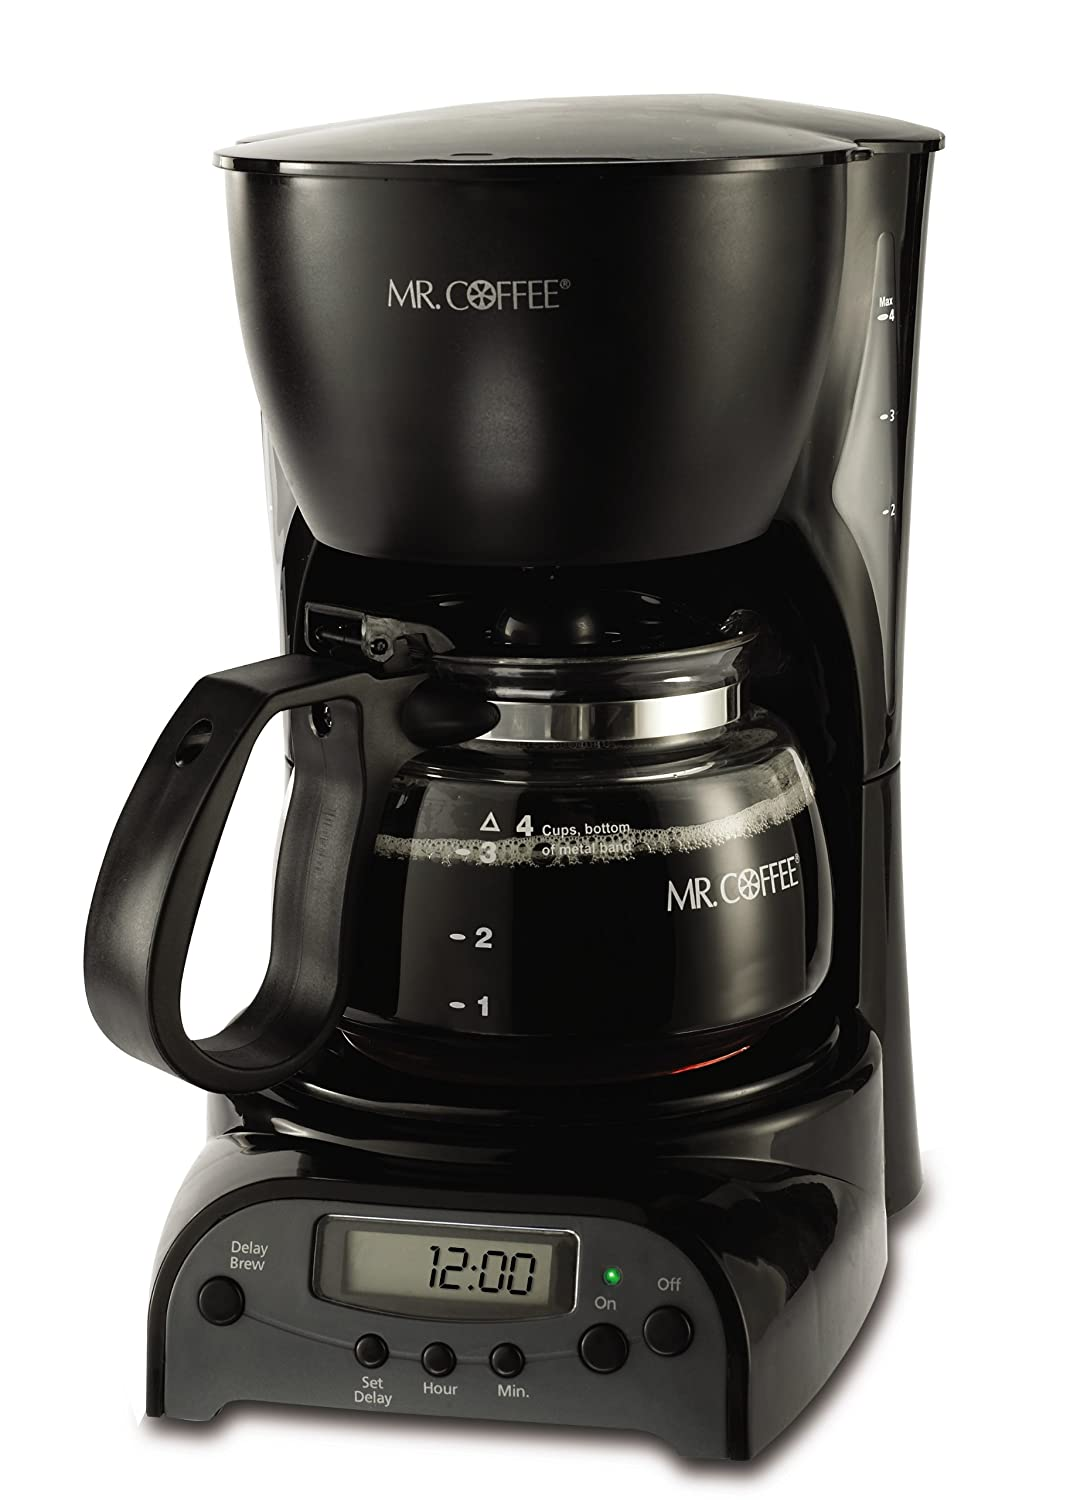 Coffee Maker Coffee Recipe : Mr Coffee DRX5 4-Cup Programmable Coffeemaker Coffee Maker Brewer Espresso Black 72179228134 eBay